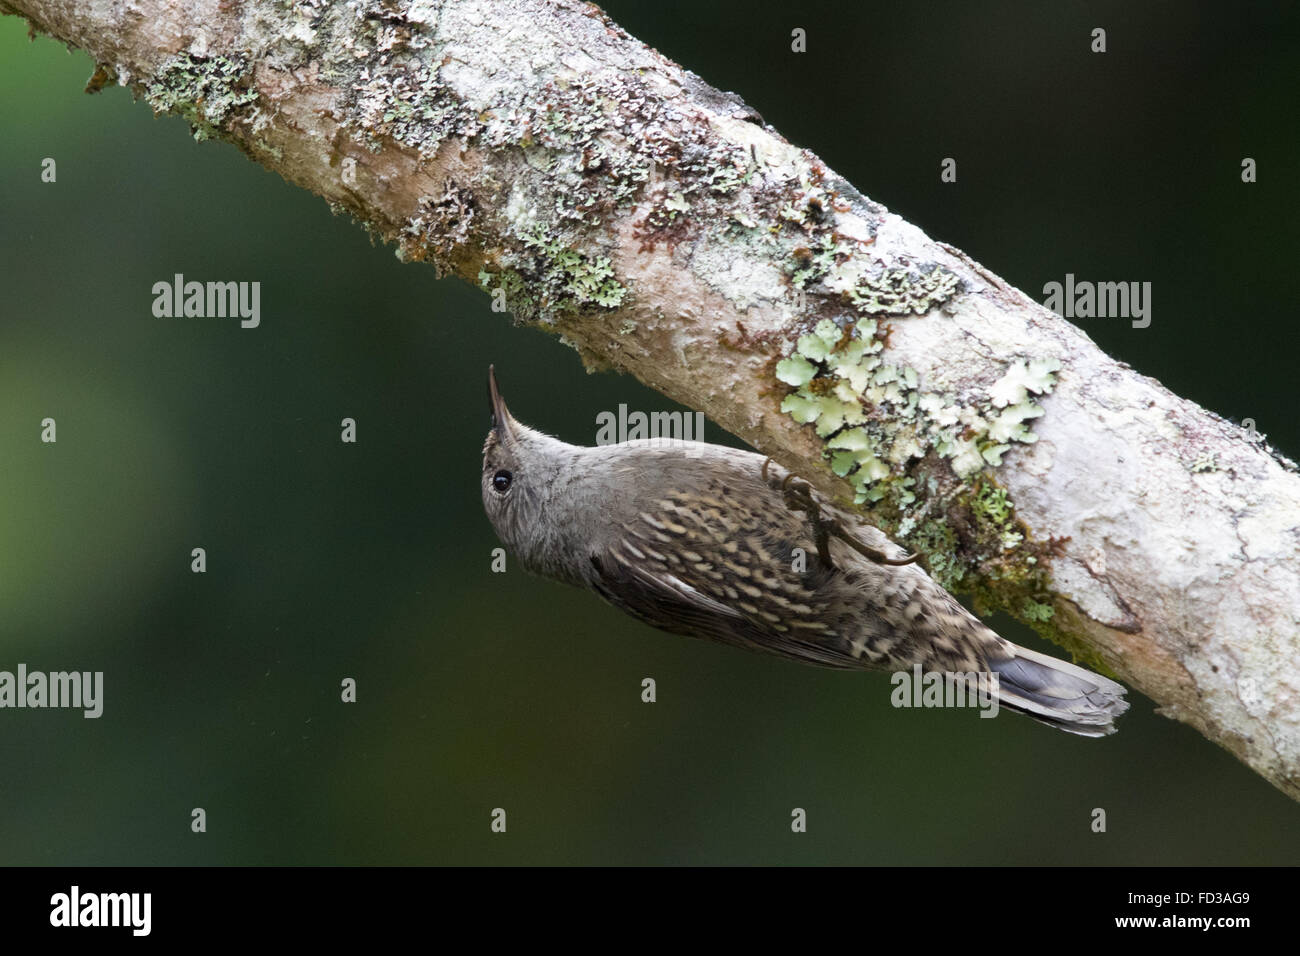 Brown Treecreeper (Climacteris picumnus) upside down on a tree branch - Stock Image